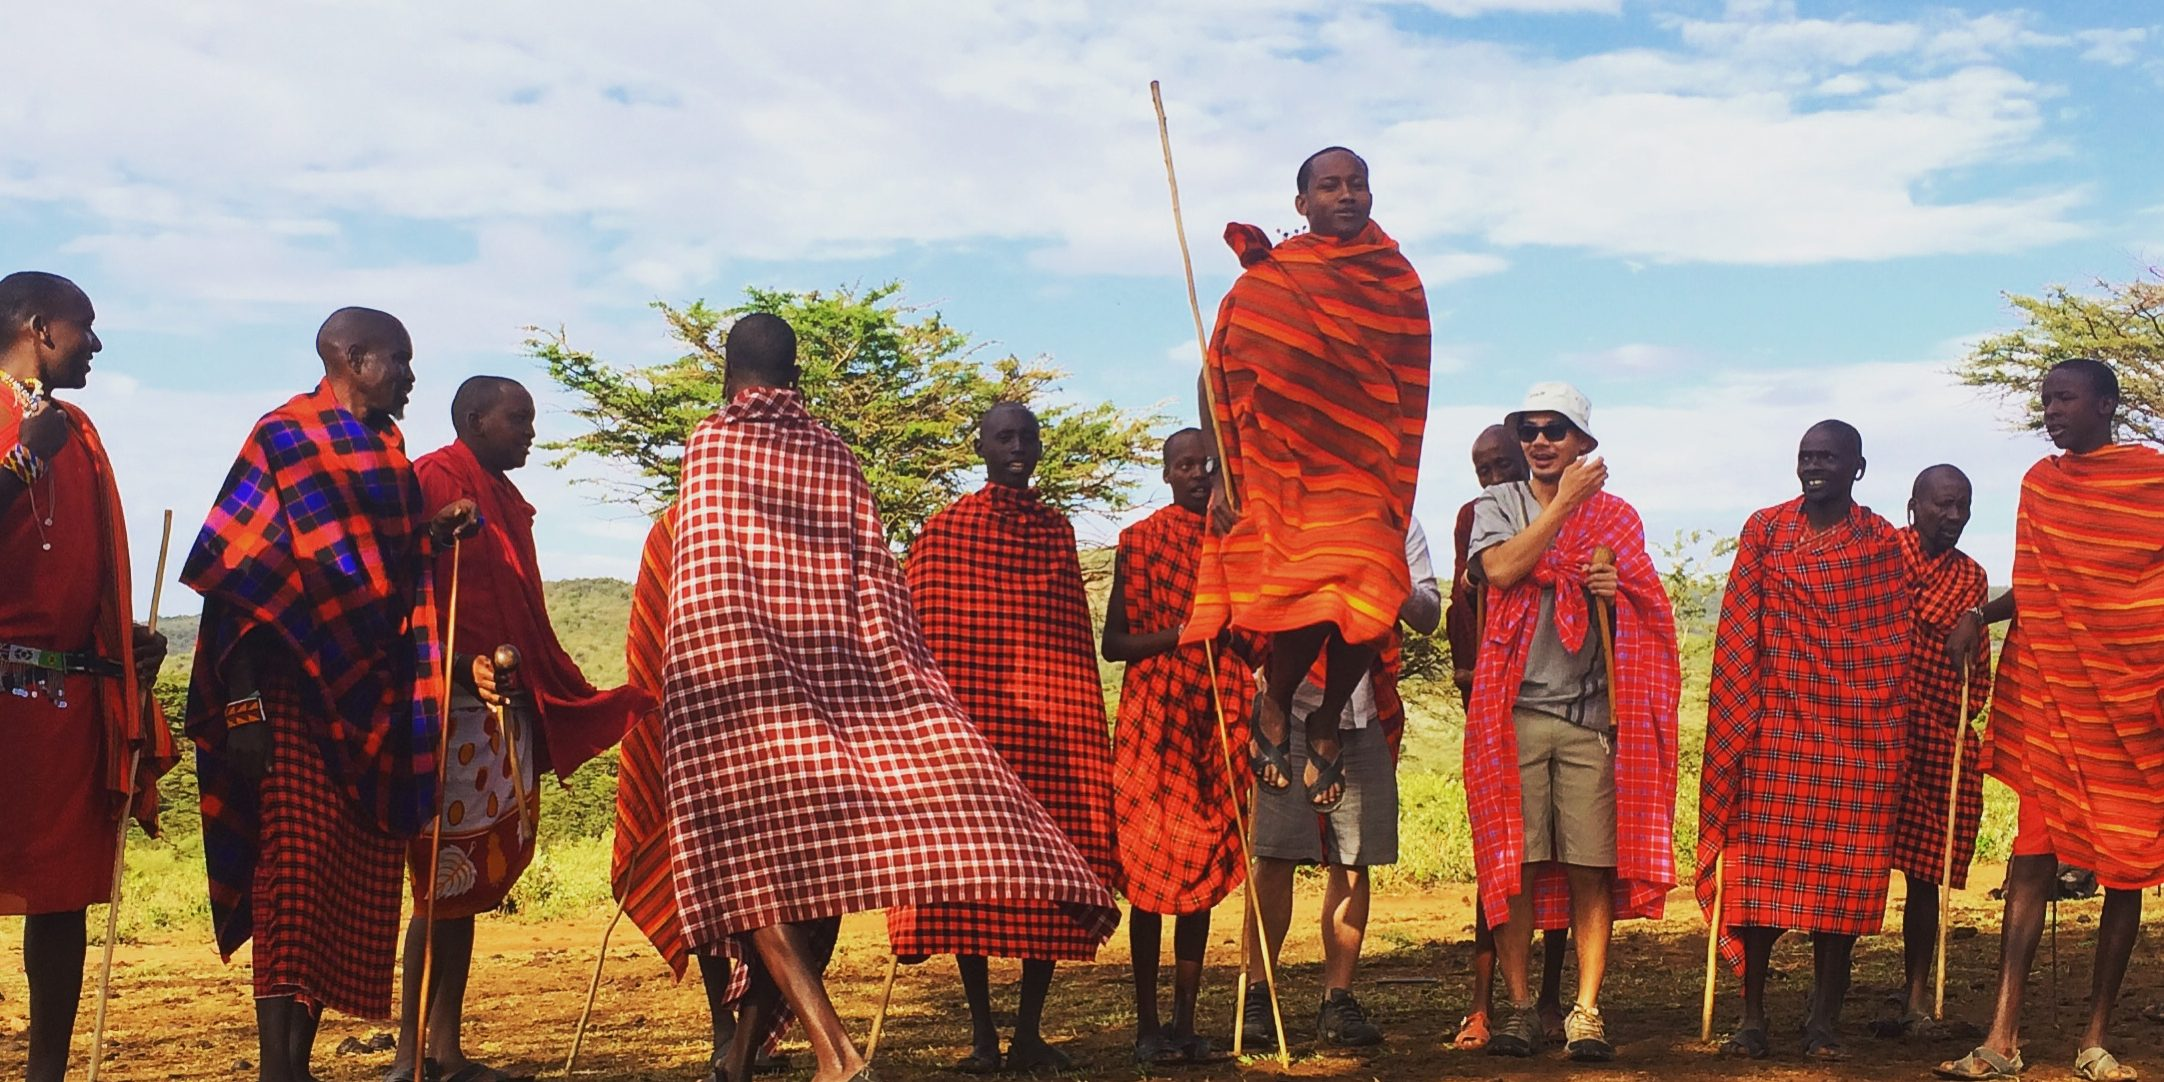 Maasai men in red shukas are performing their jumping dance. One man is jumping very high infront of the others watching. Two visitors are amazed by the performance.